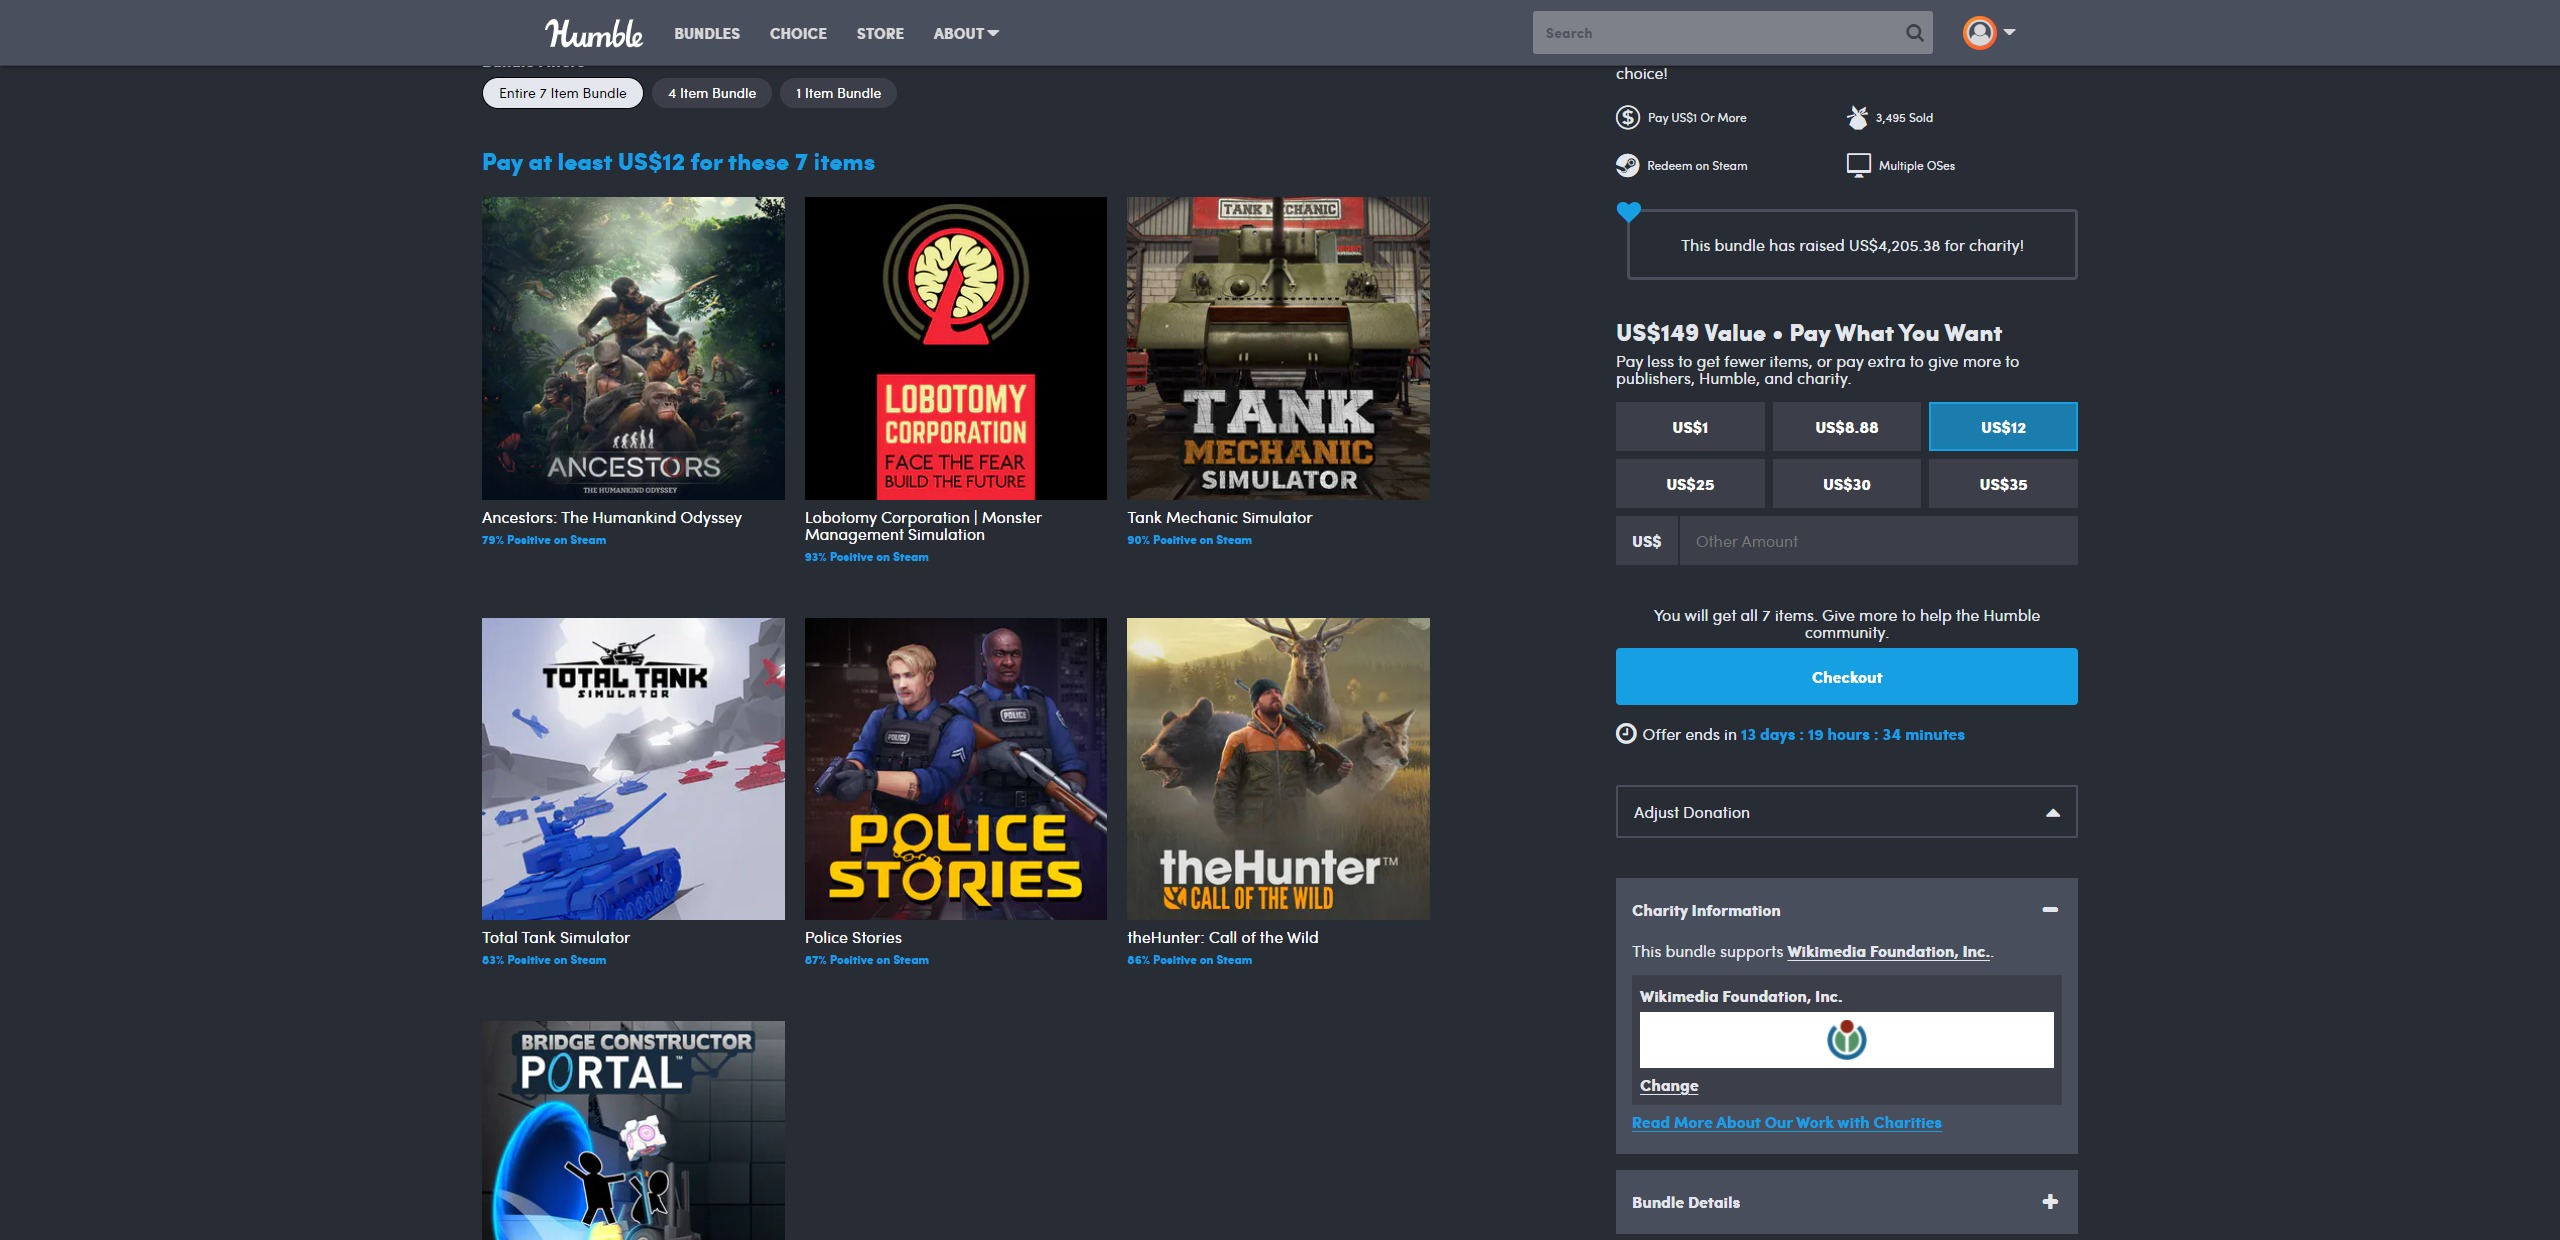 FireShot Capture 040 - Humble Seven Deadly Sims Bundle (pay what you want and help charity)_ - www.humblebundle.com.jpg